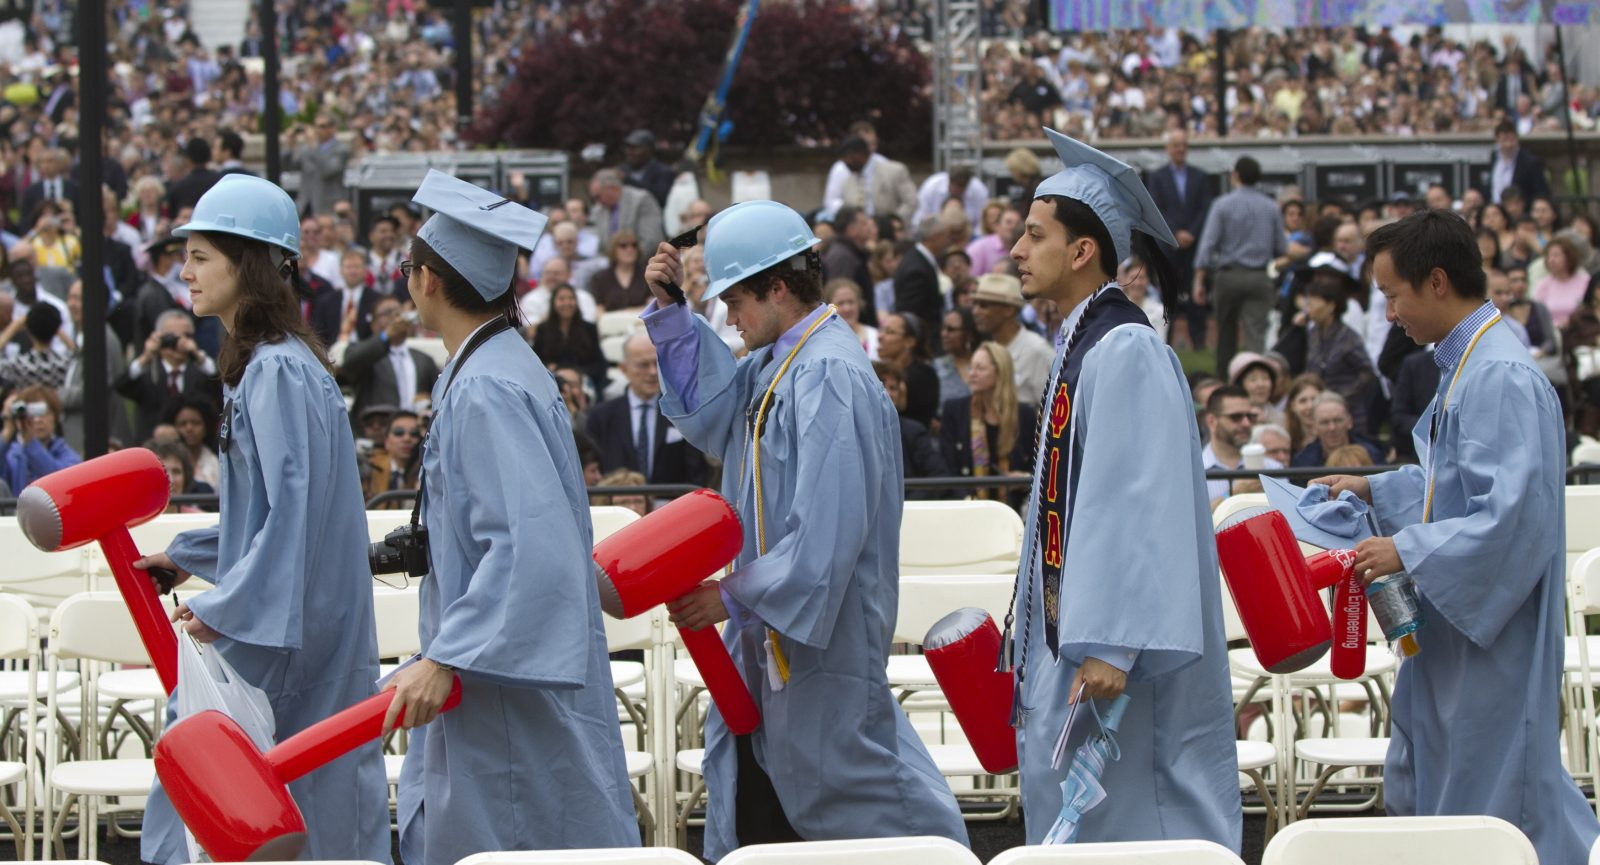 Graduates from Columbia University's School of Engineering walk in a procession during the university's commencement ceremony in New York May 16, 2012. REUTERS/Keith Bedford  (UNITED STATES - Tags: EDUCATION) - GM1E85H06XR01